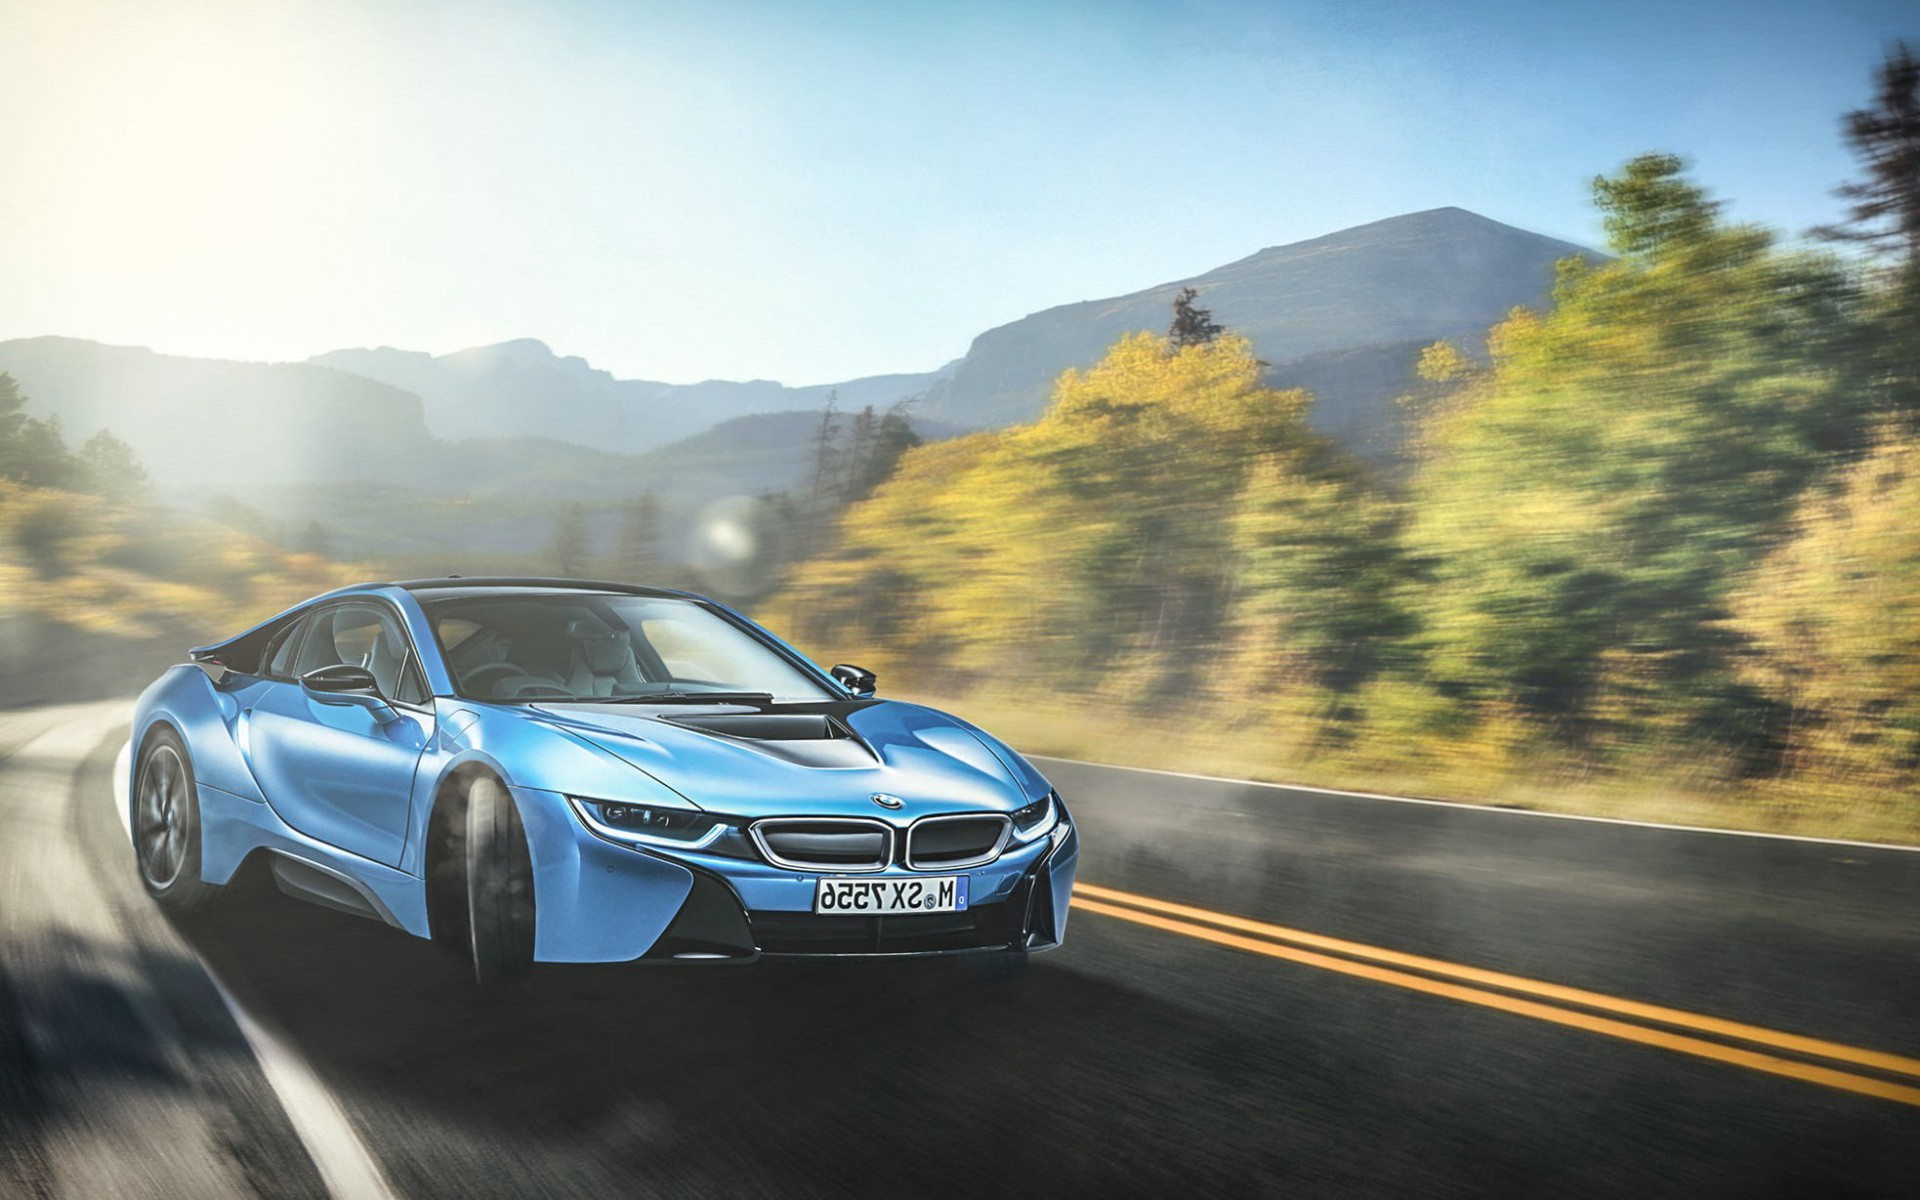 Bmw I8 Blue Hd Cars 4k Wallpapers Images Backgrounds Photos And